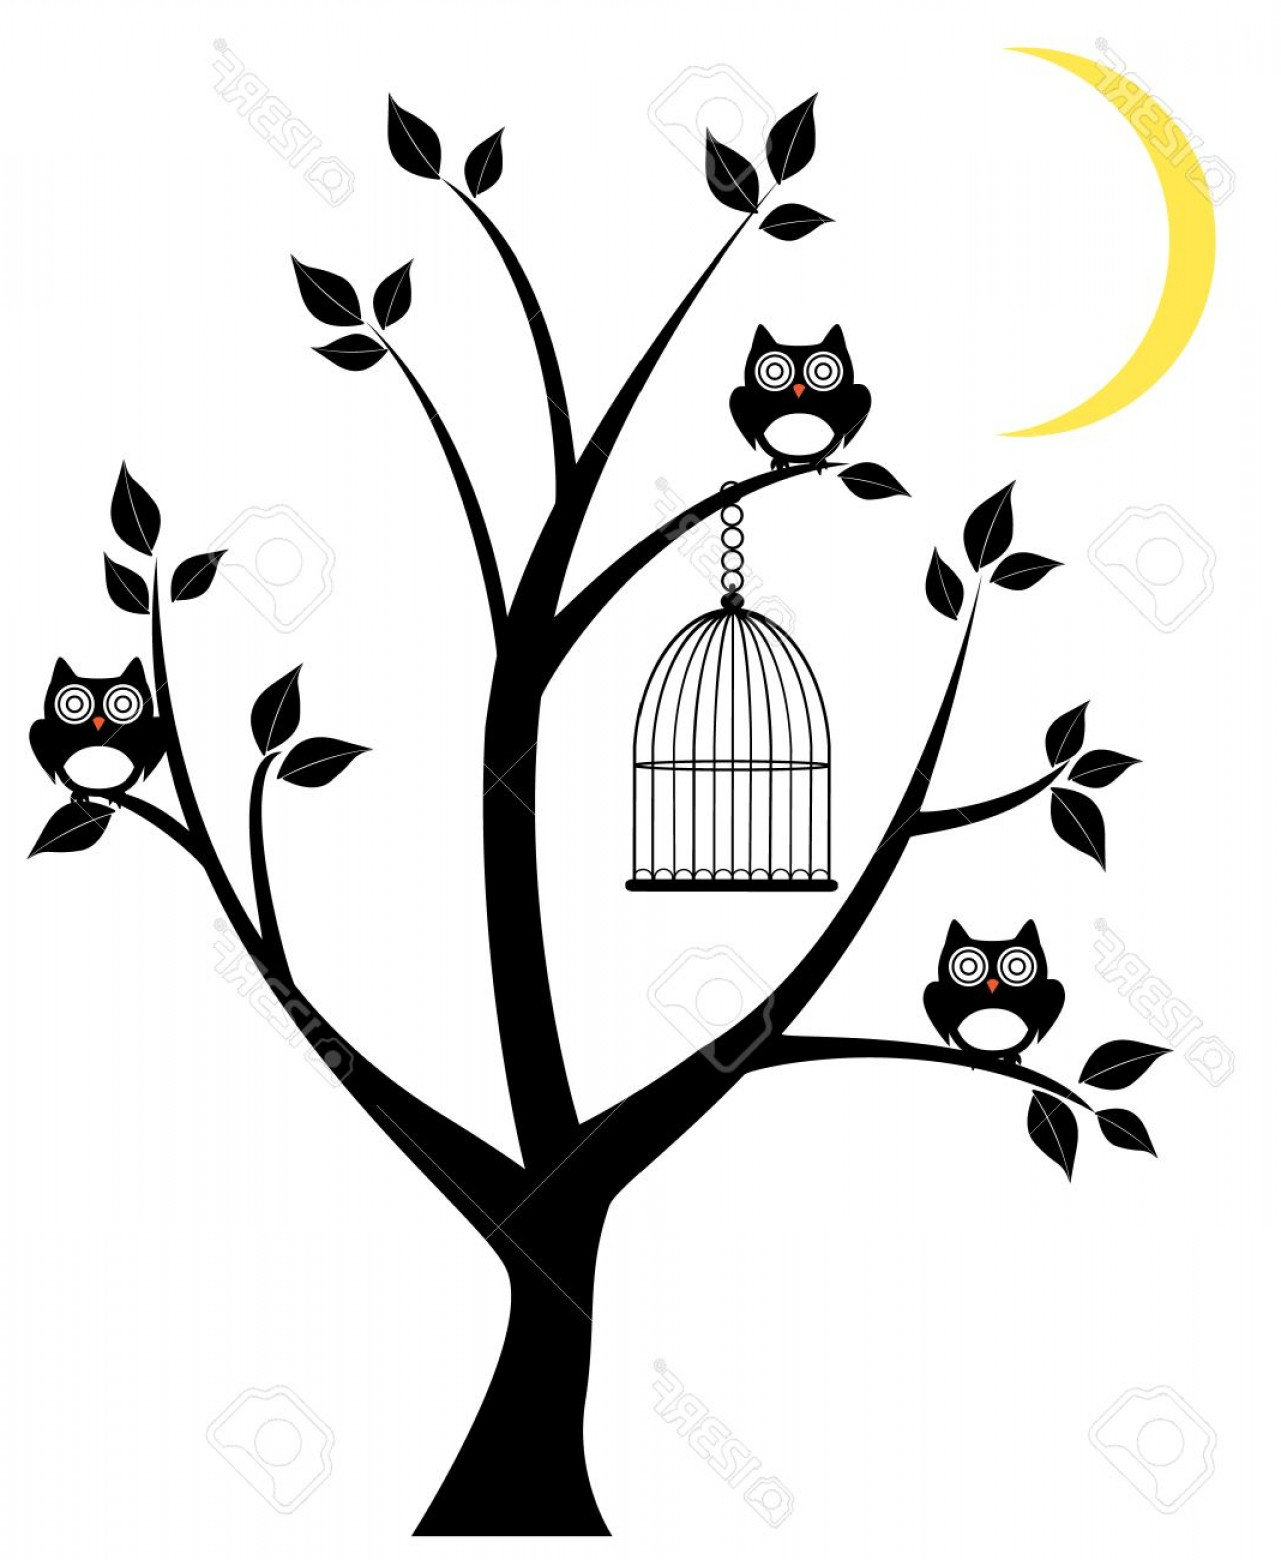 Owl Silhouette Vector Art: Photostock Vector Vector Tree Silhouette With Owls Cage And Moon Crescent